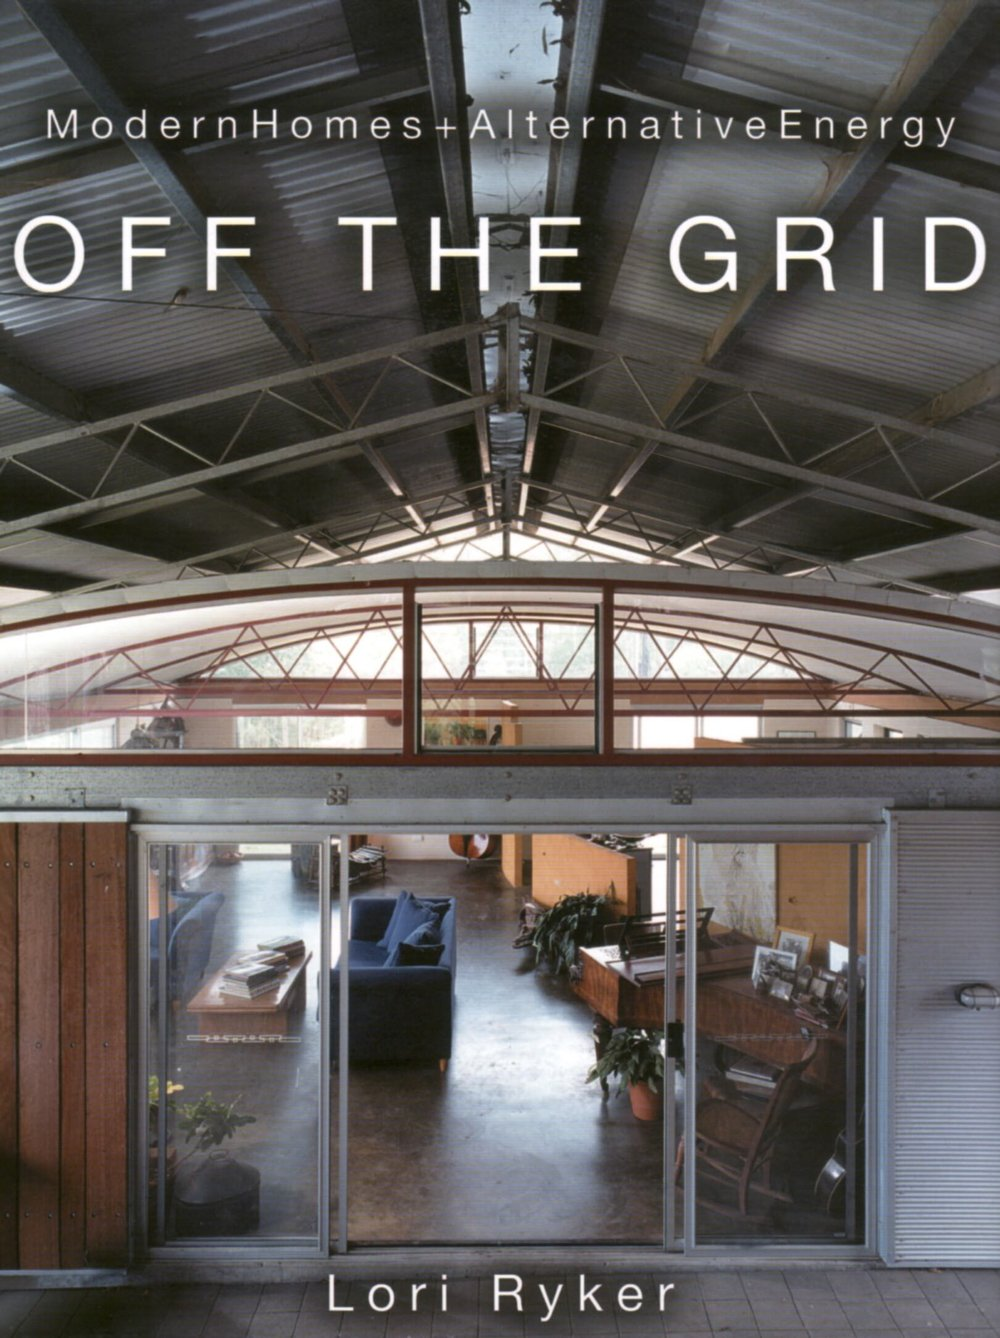 Off the Grid 1 copy.jpg